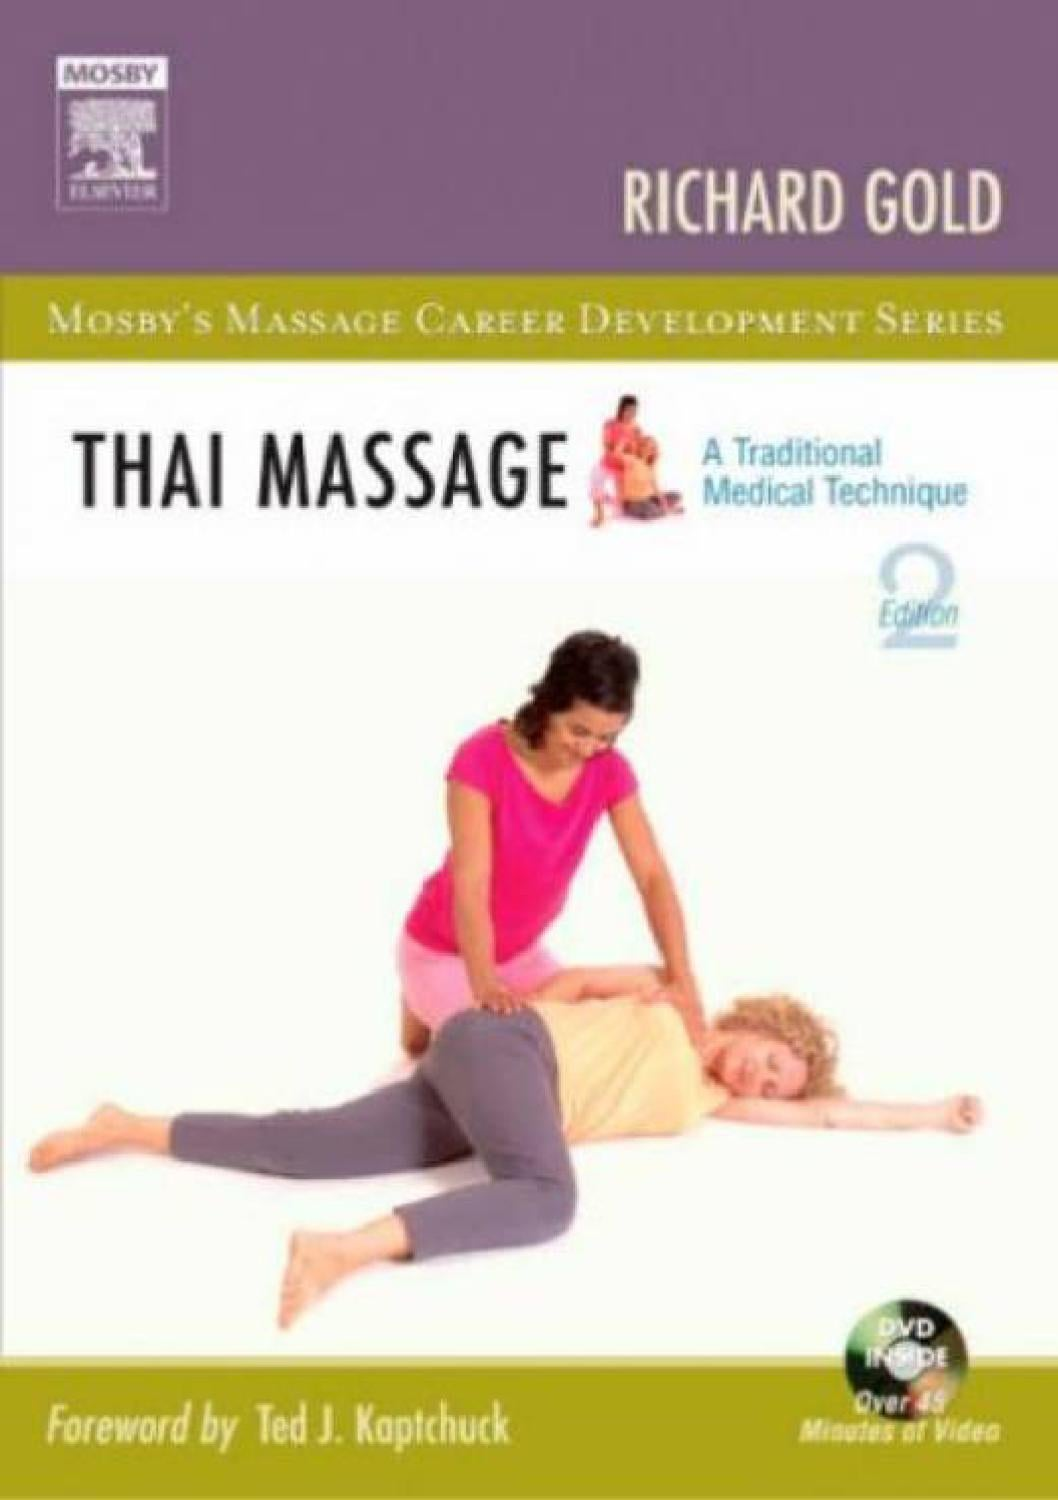 My acquaintance with Thai massage 85